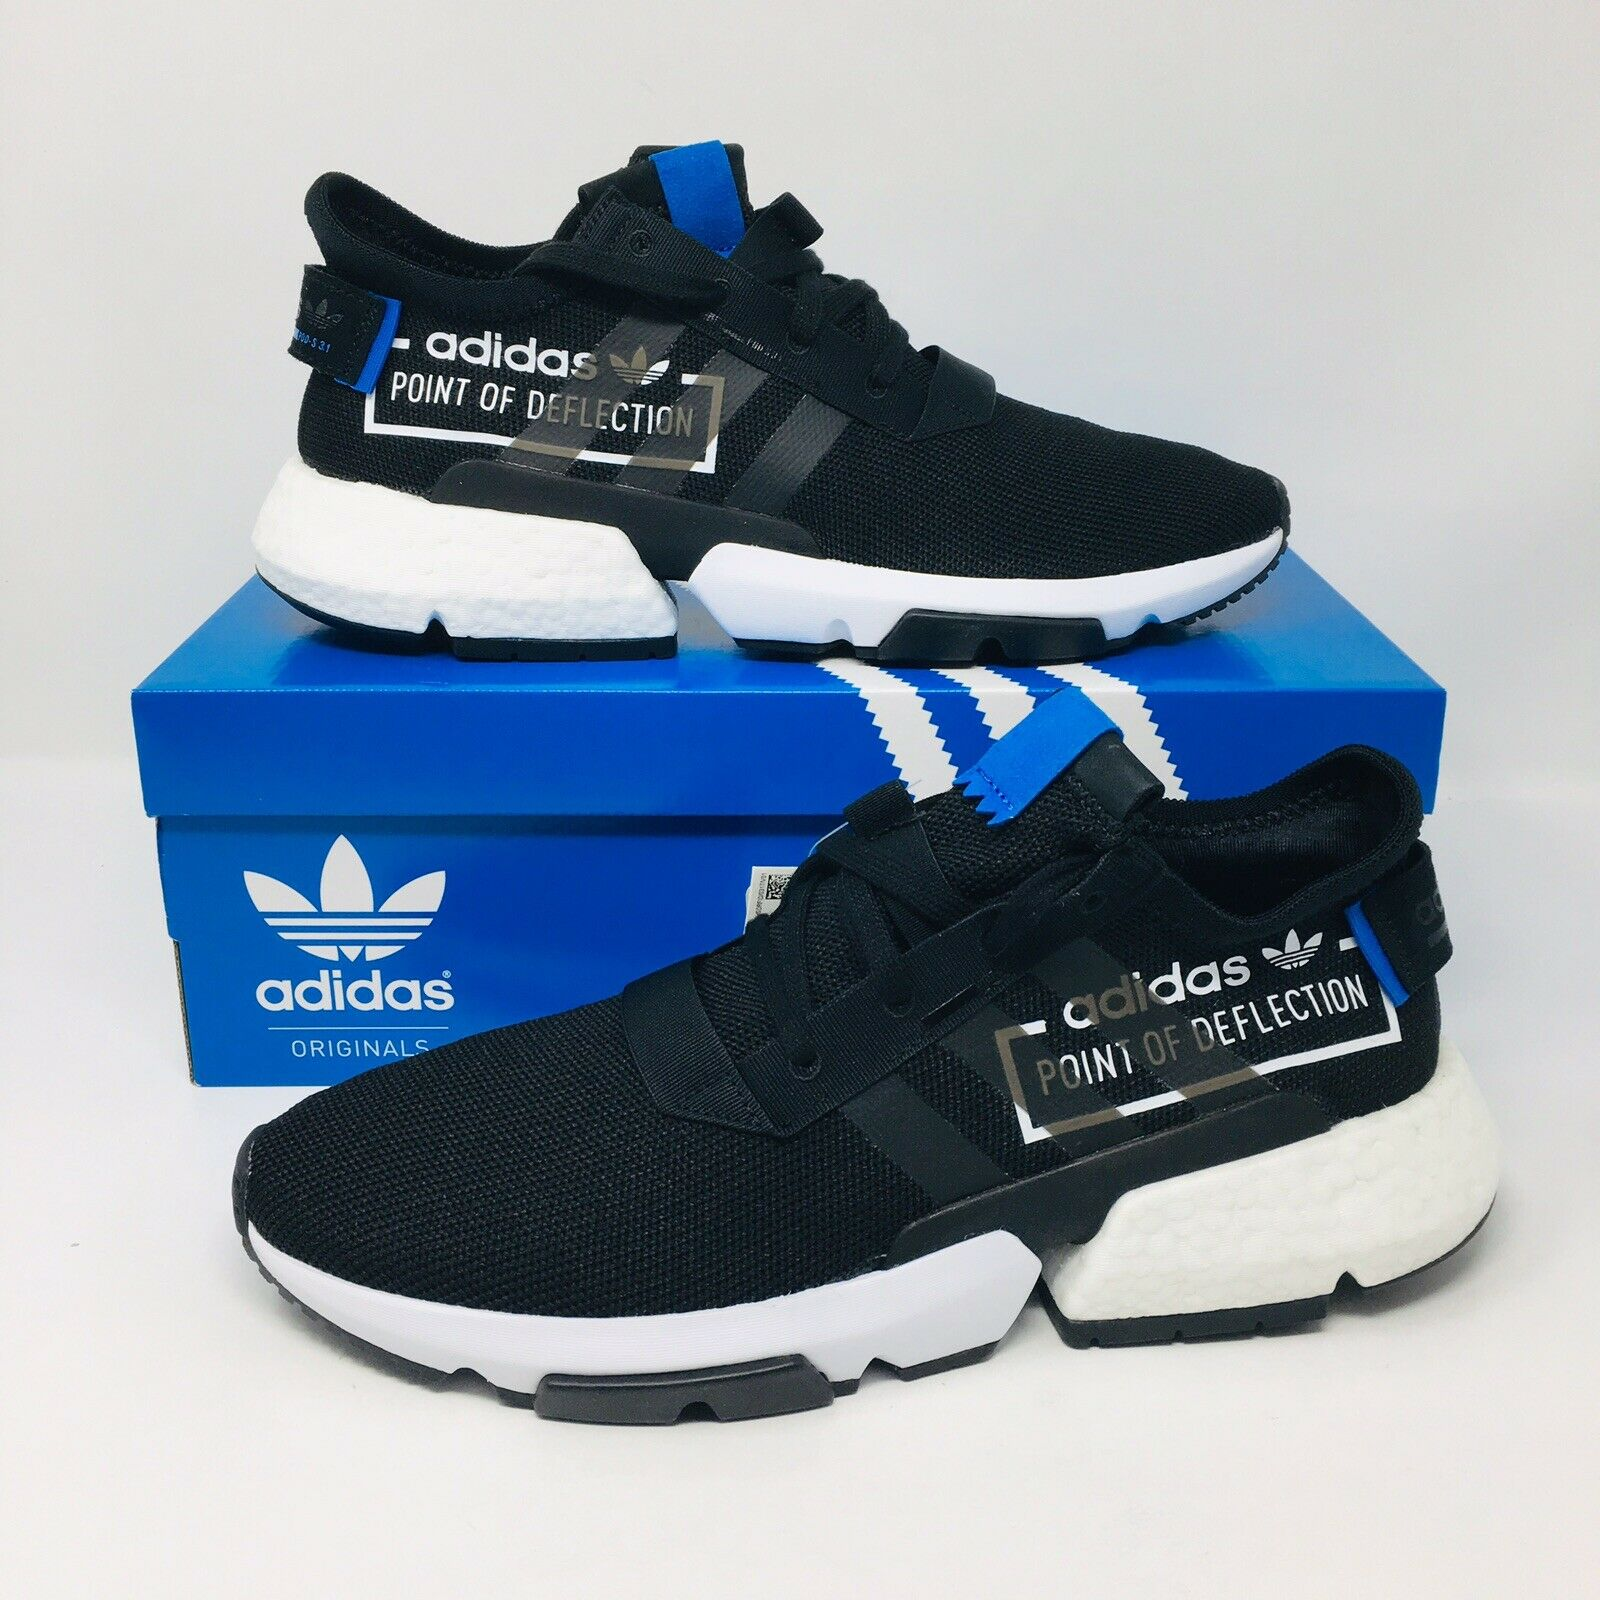 NEW Adidas Originals Point Of Deflection (Men Size 11) Running shoes Boost NMD